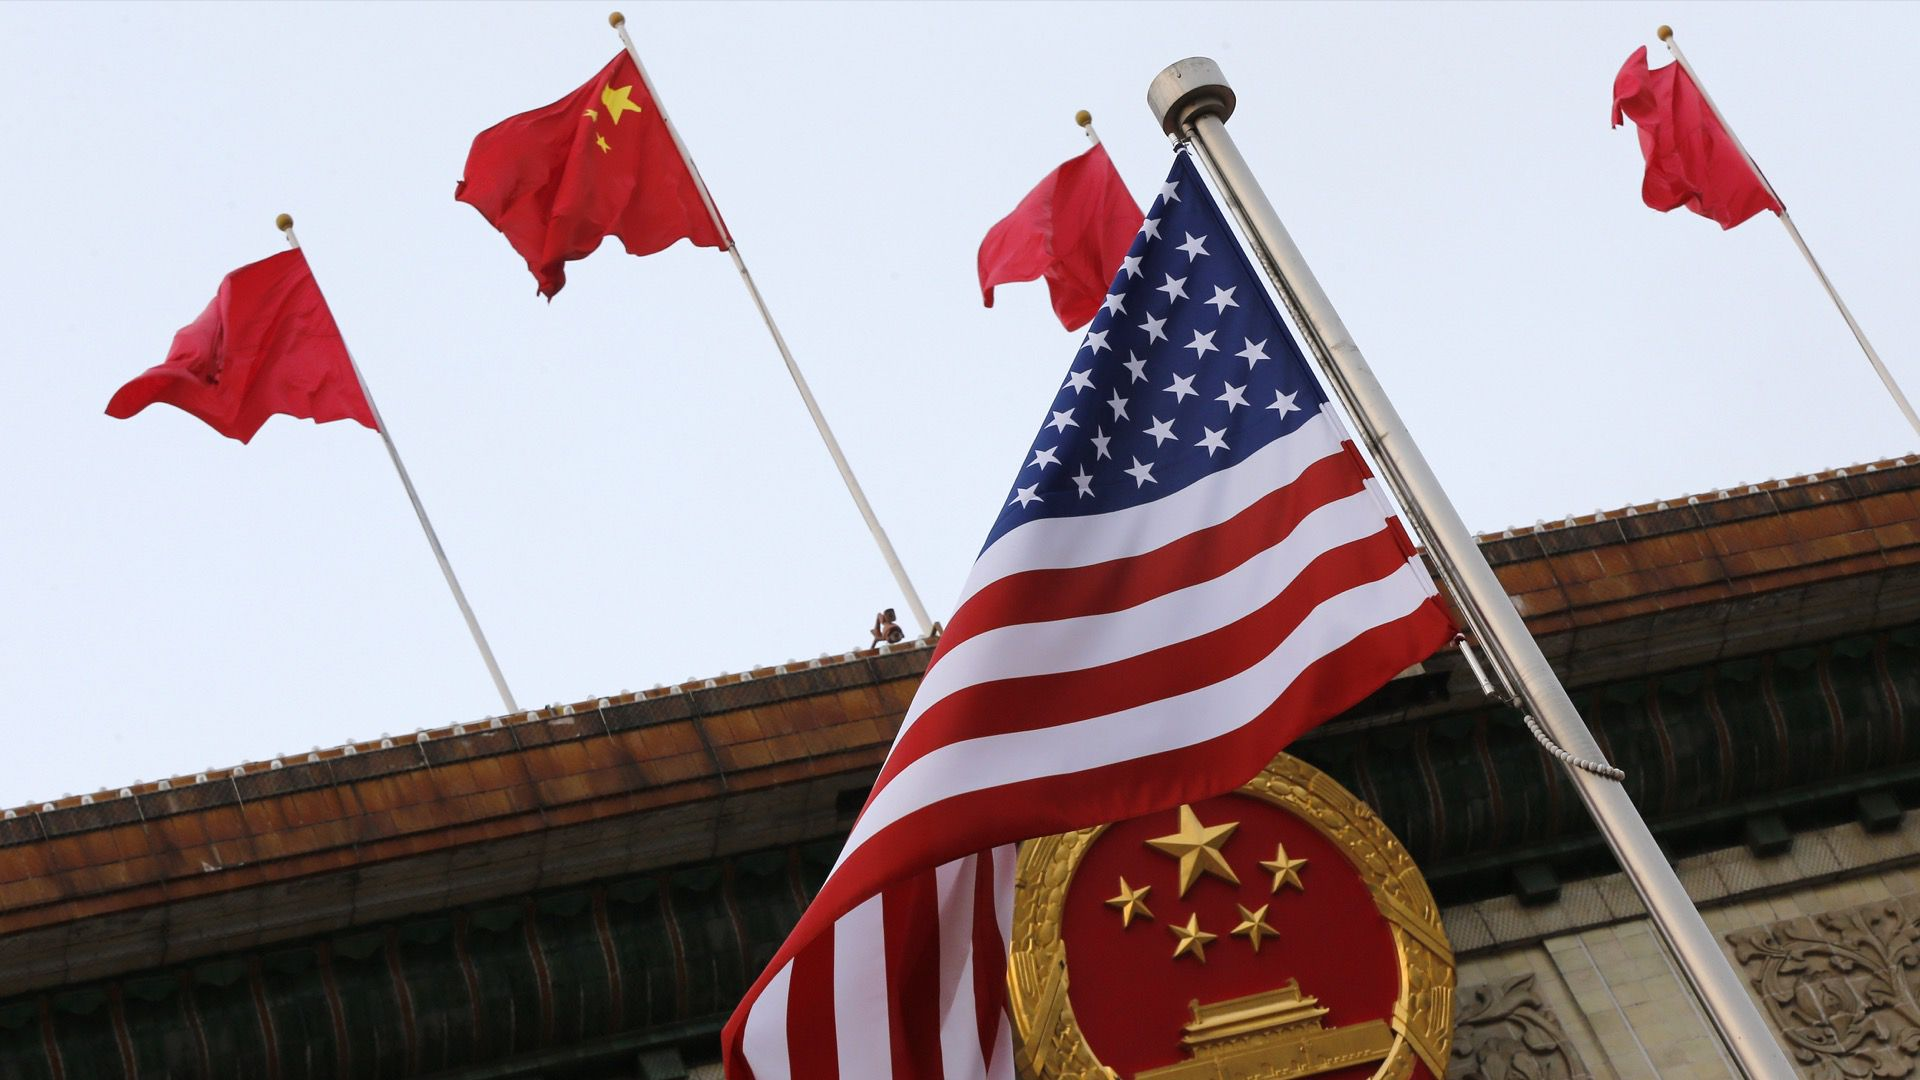 Chinese and American flags wave